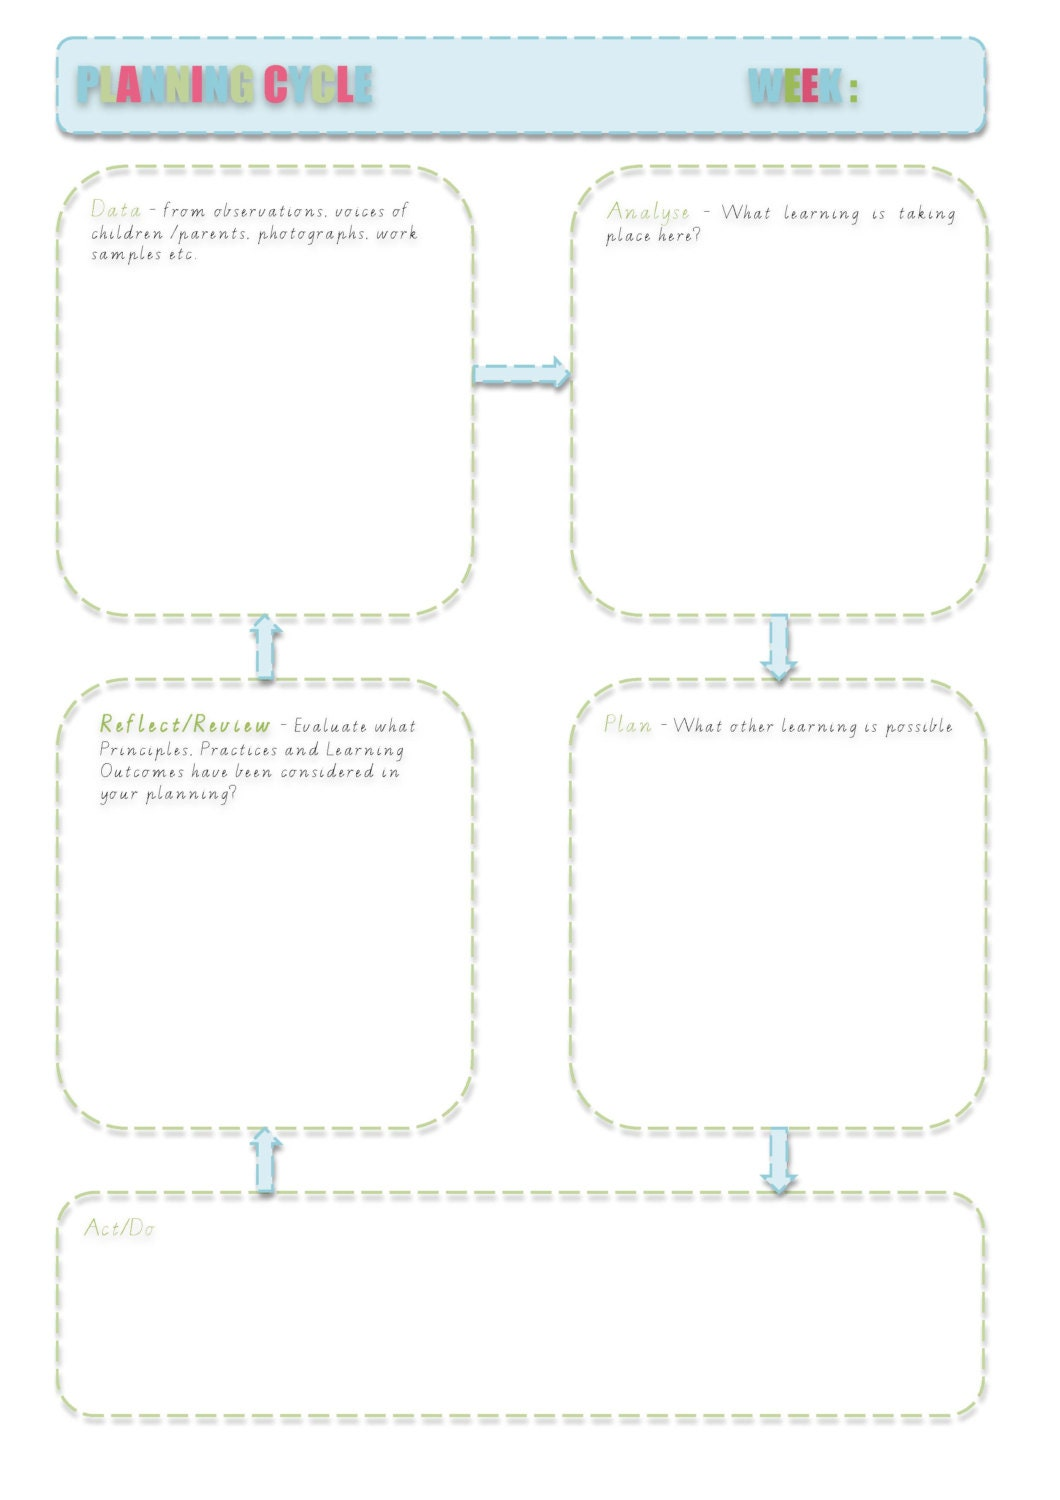 early years learning framework planning templates - planning cycle document for eylf